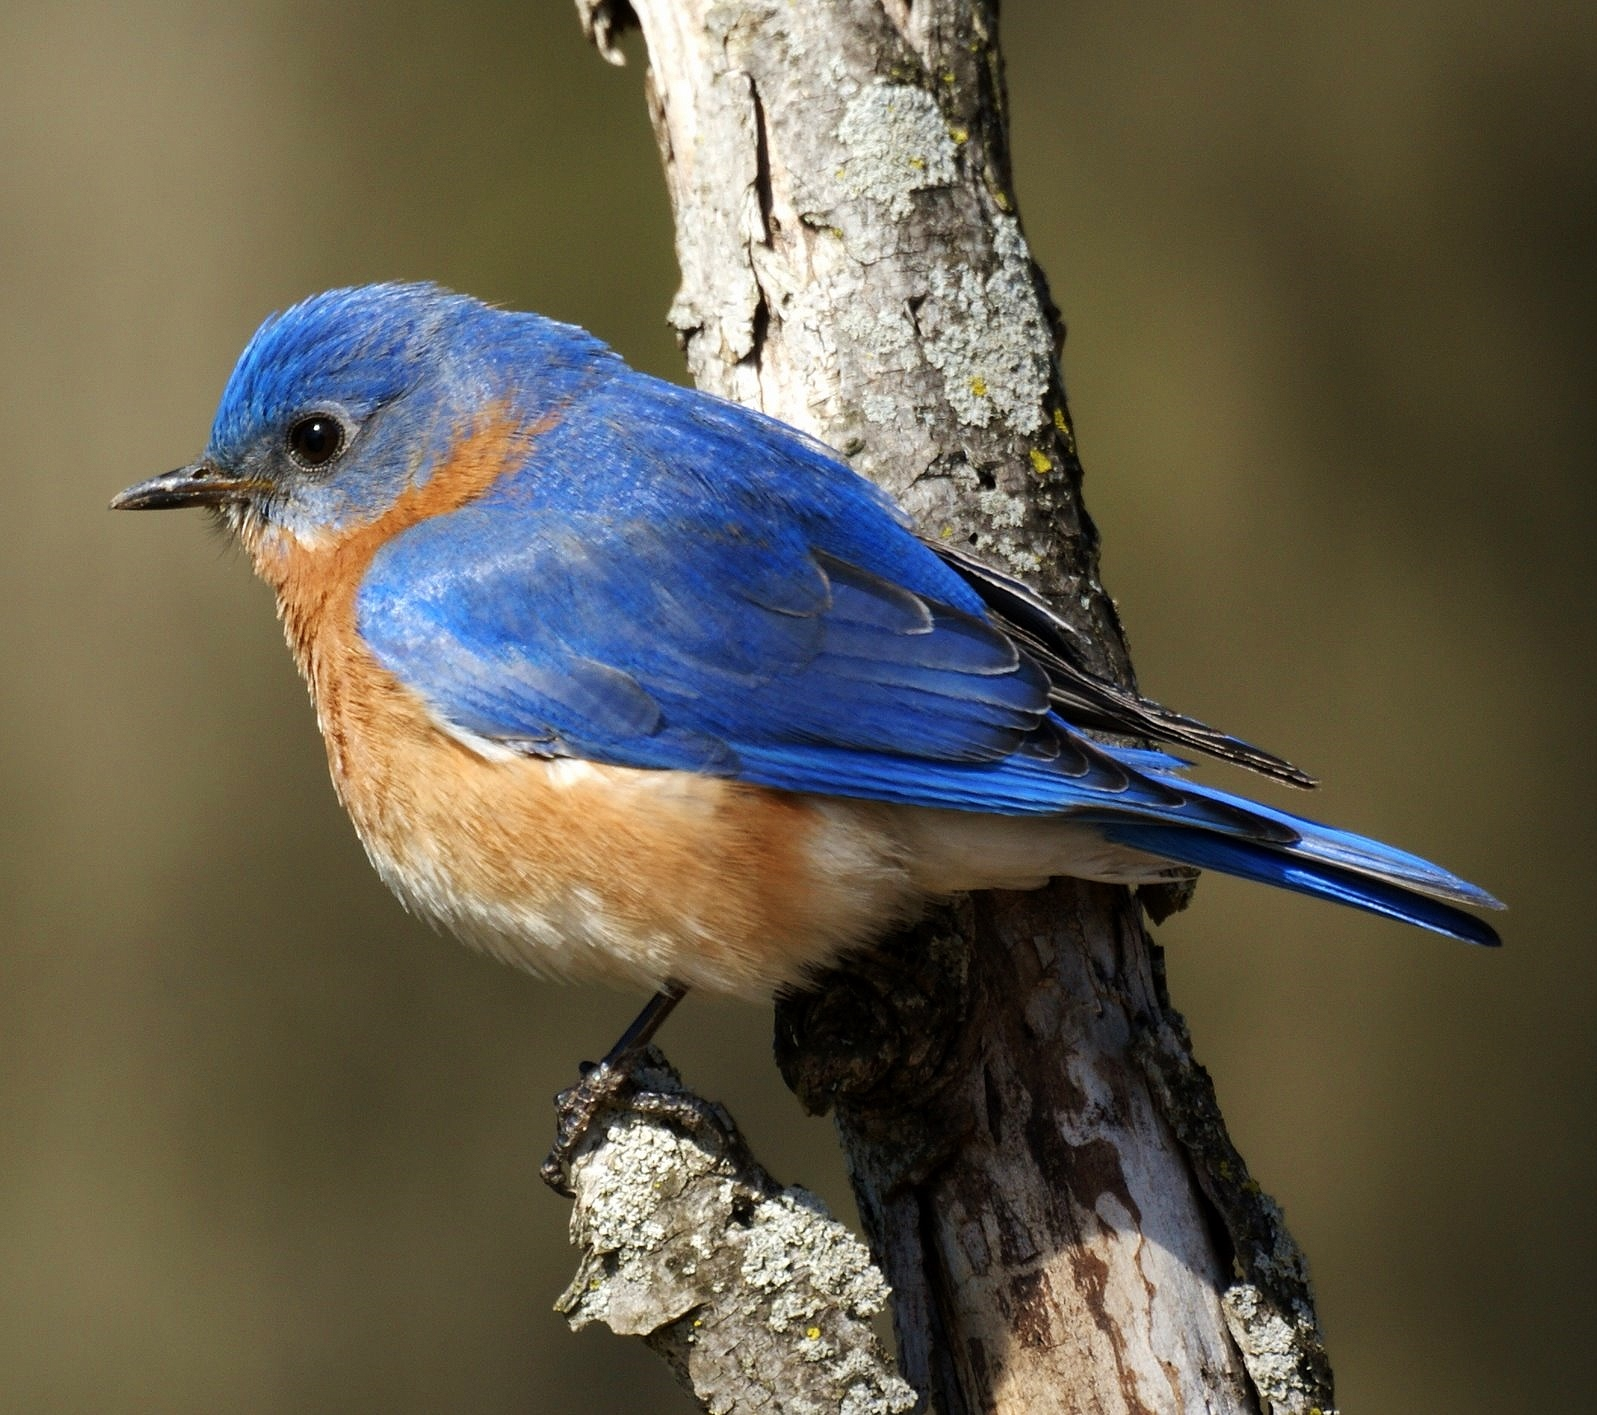 Blue bird - photo#1